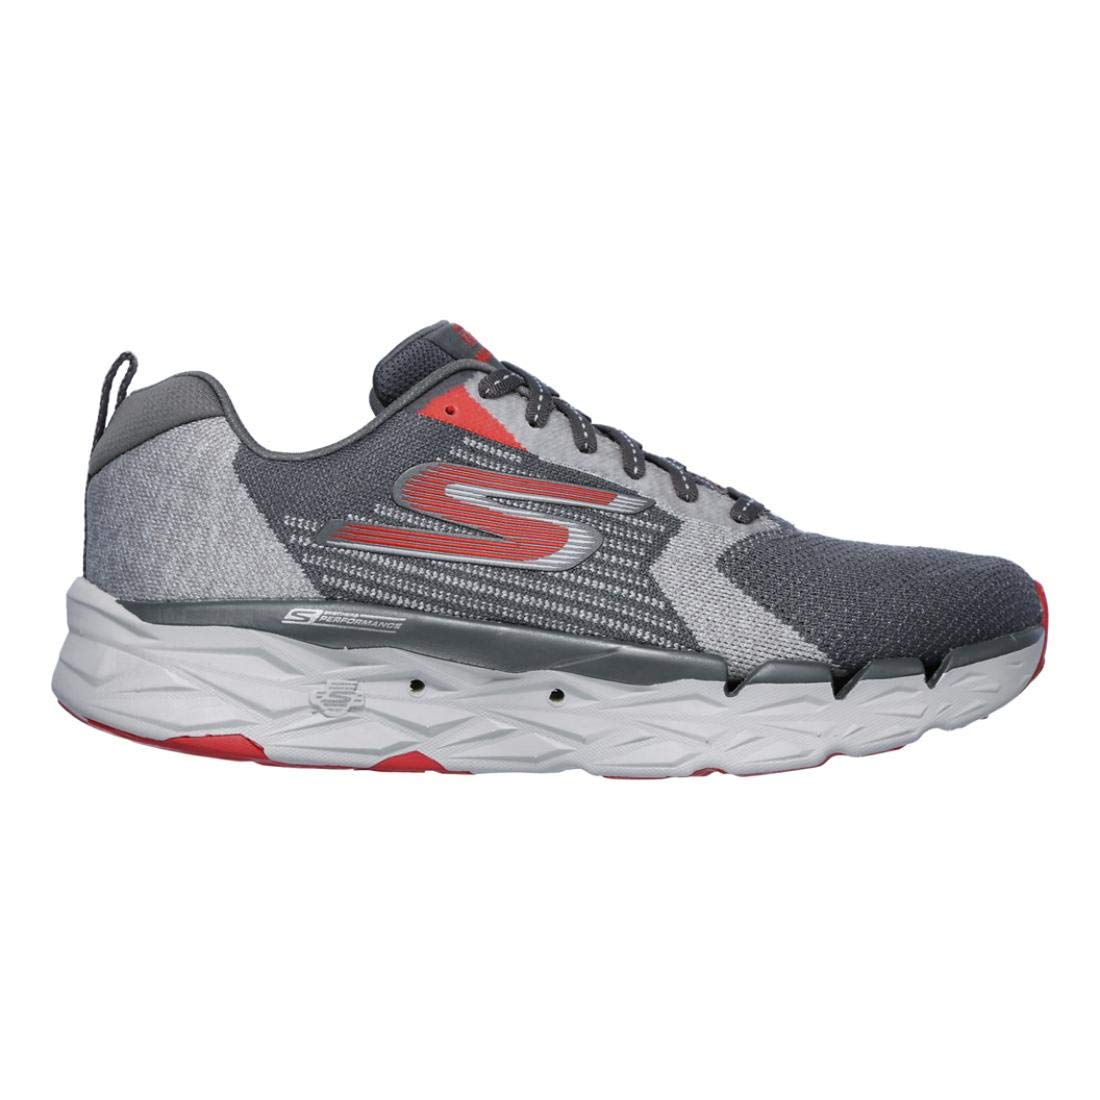 Skechers Men's GOrun MaxRoad 3 Ultra Shoe